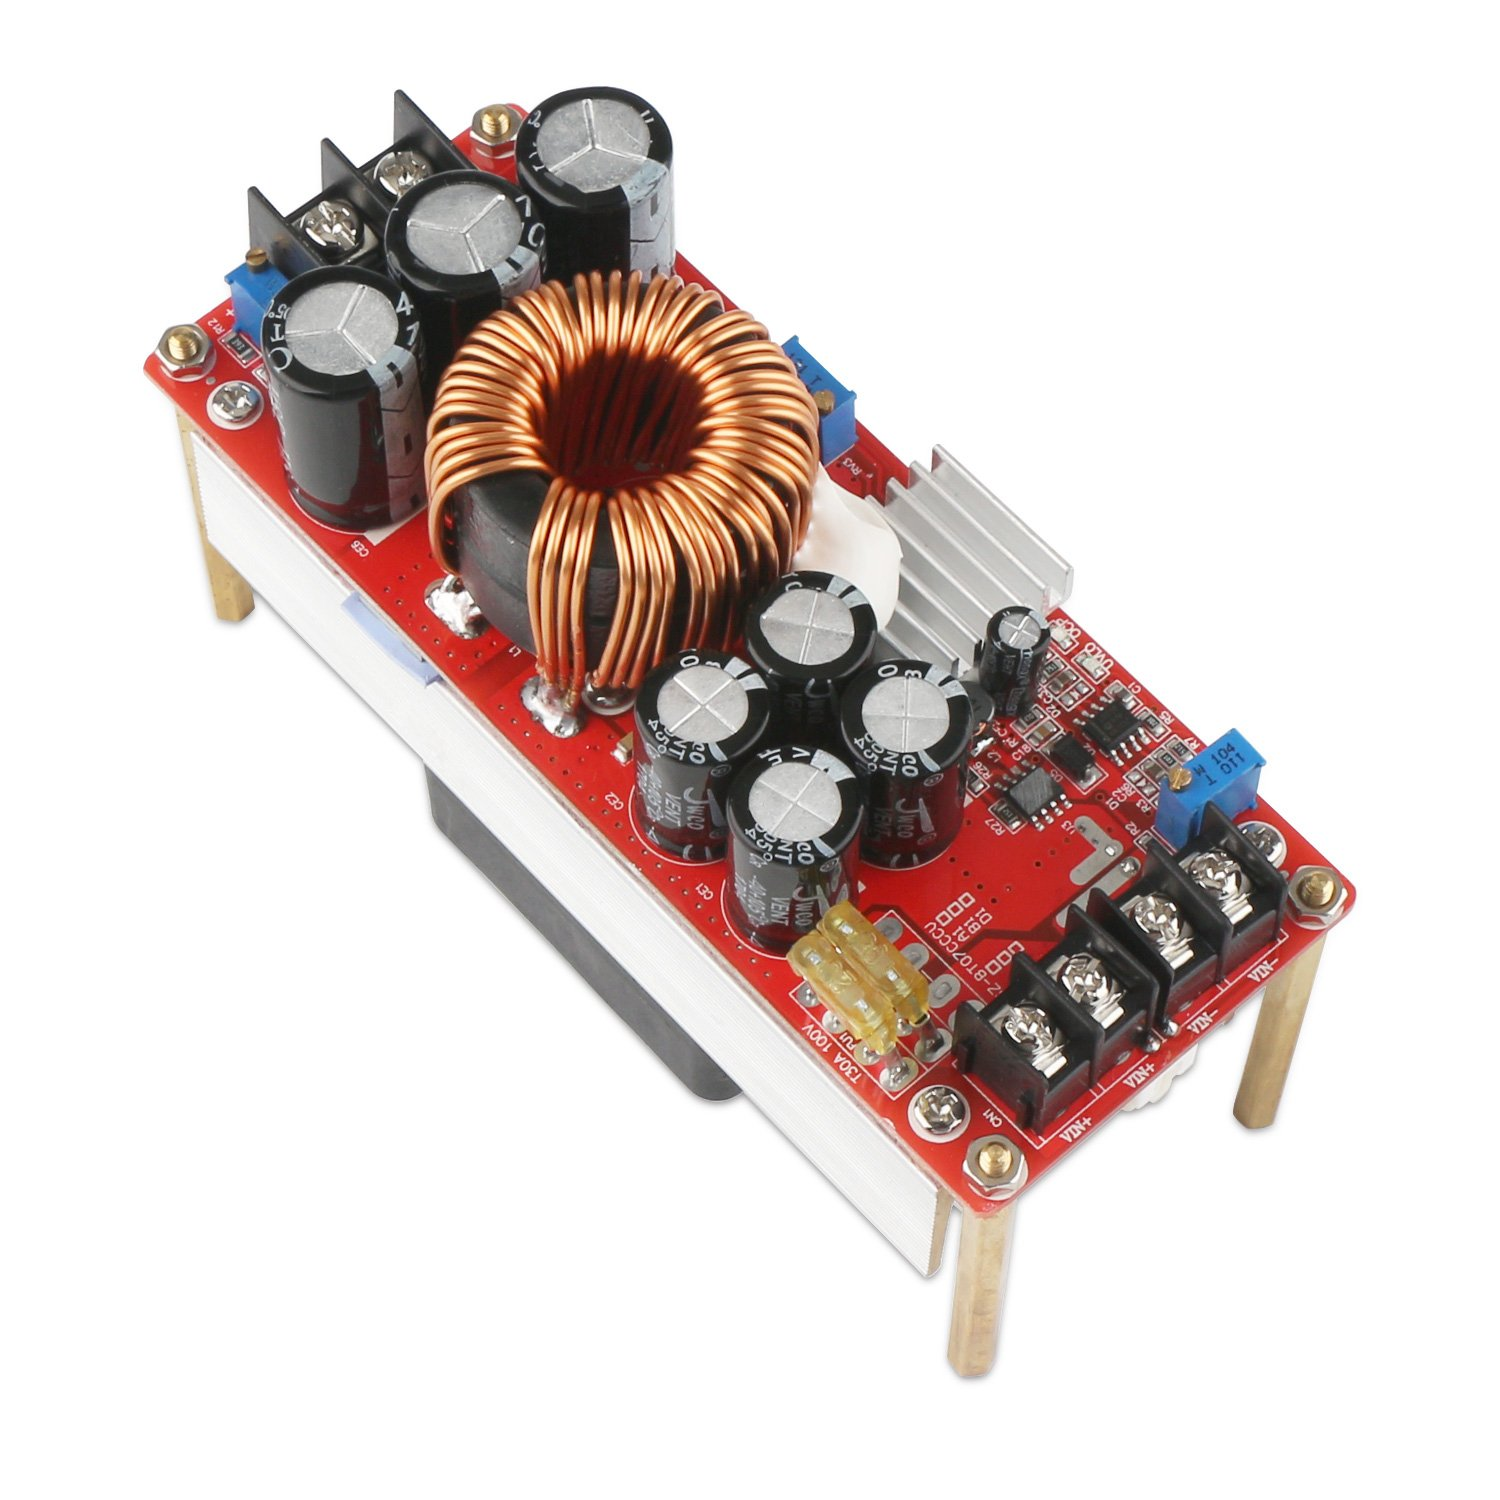 Boost Voltage Converter, DROK 1500W Voltage Regulator Booster DC 10V-60V 12V Step Up to DC 12V-90V 24V 30A Power Supply Module High Power Volt Transformer Circuit Board with Cooling Fan by DROK (Image #8)